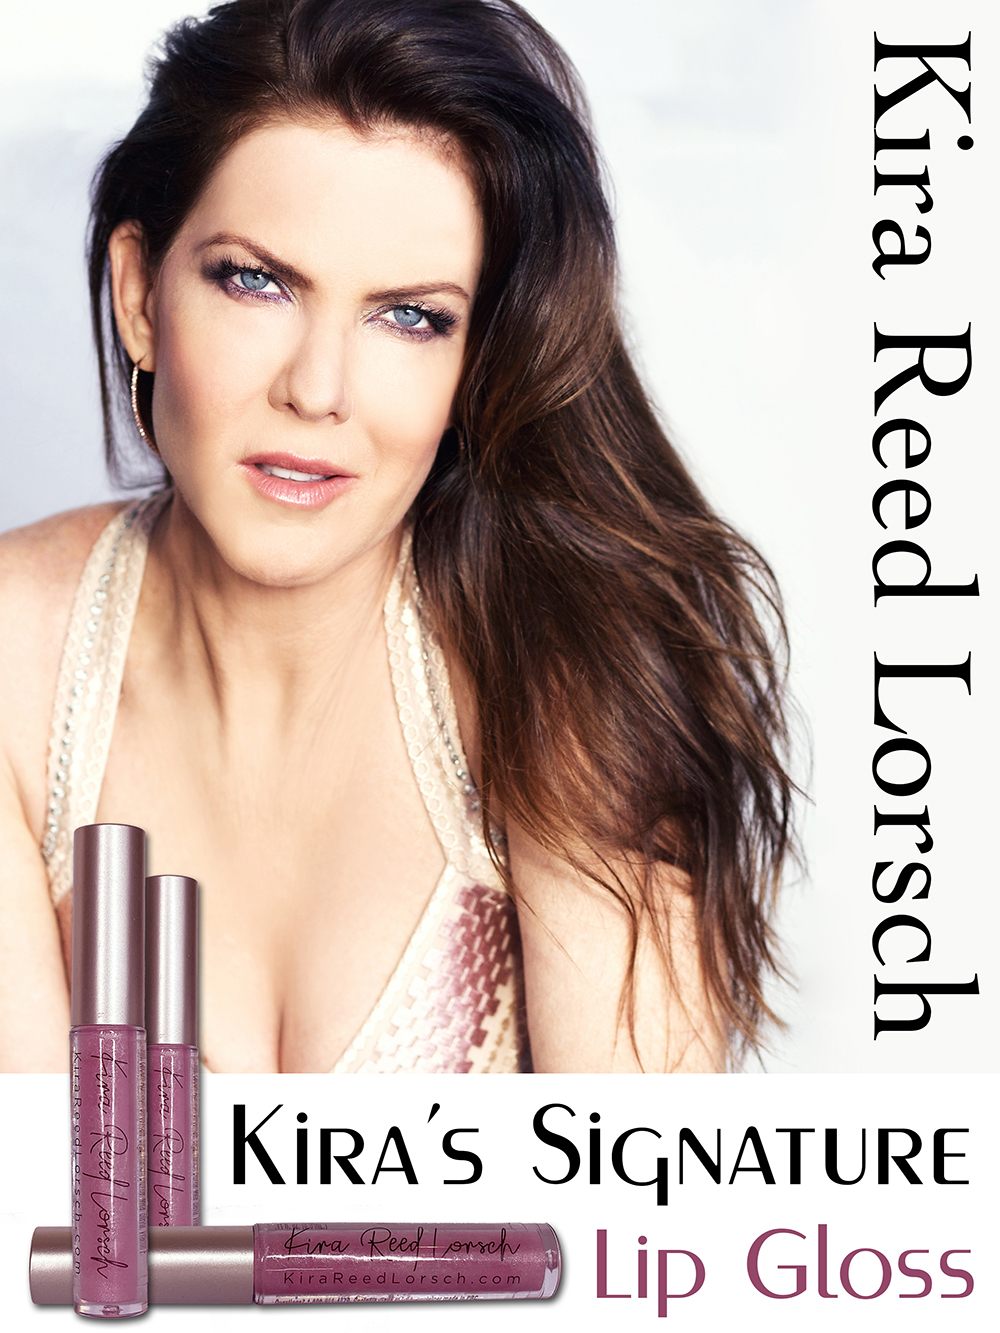 Kira Reed Lorsch - Kira's Signature Lip Gloss